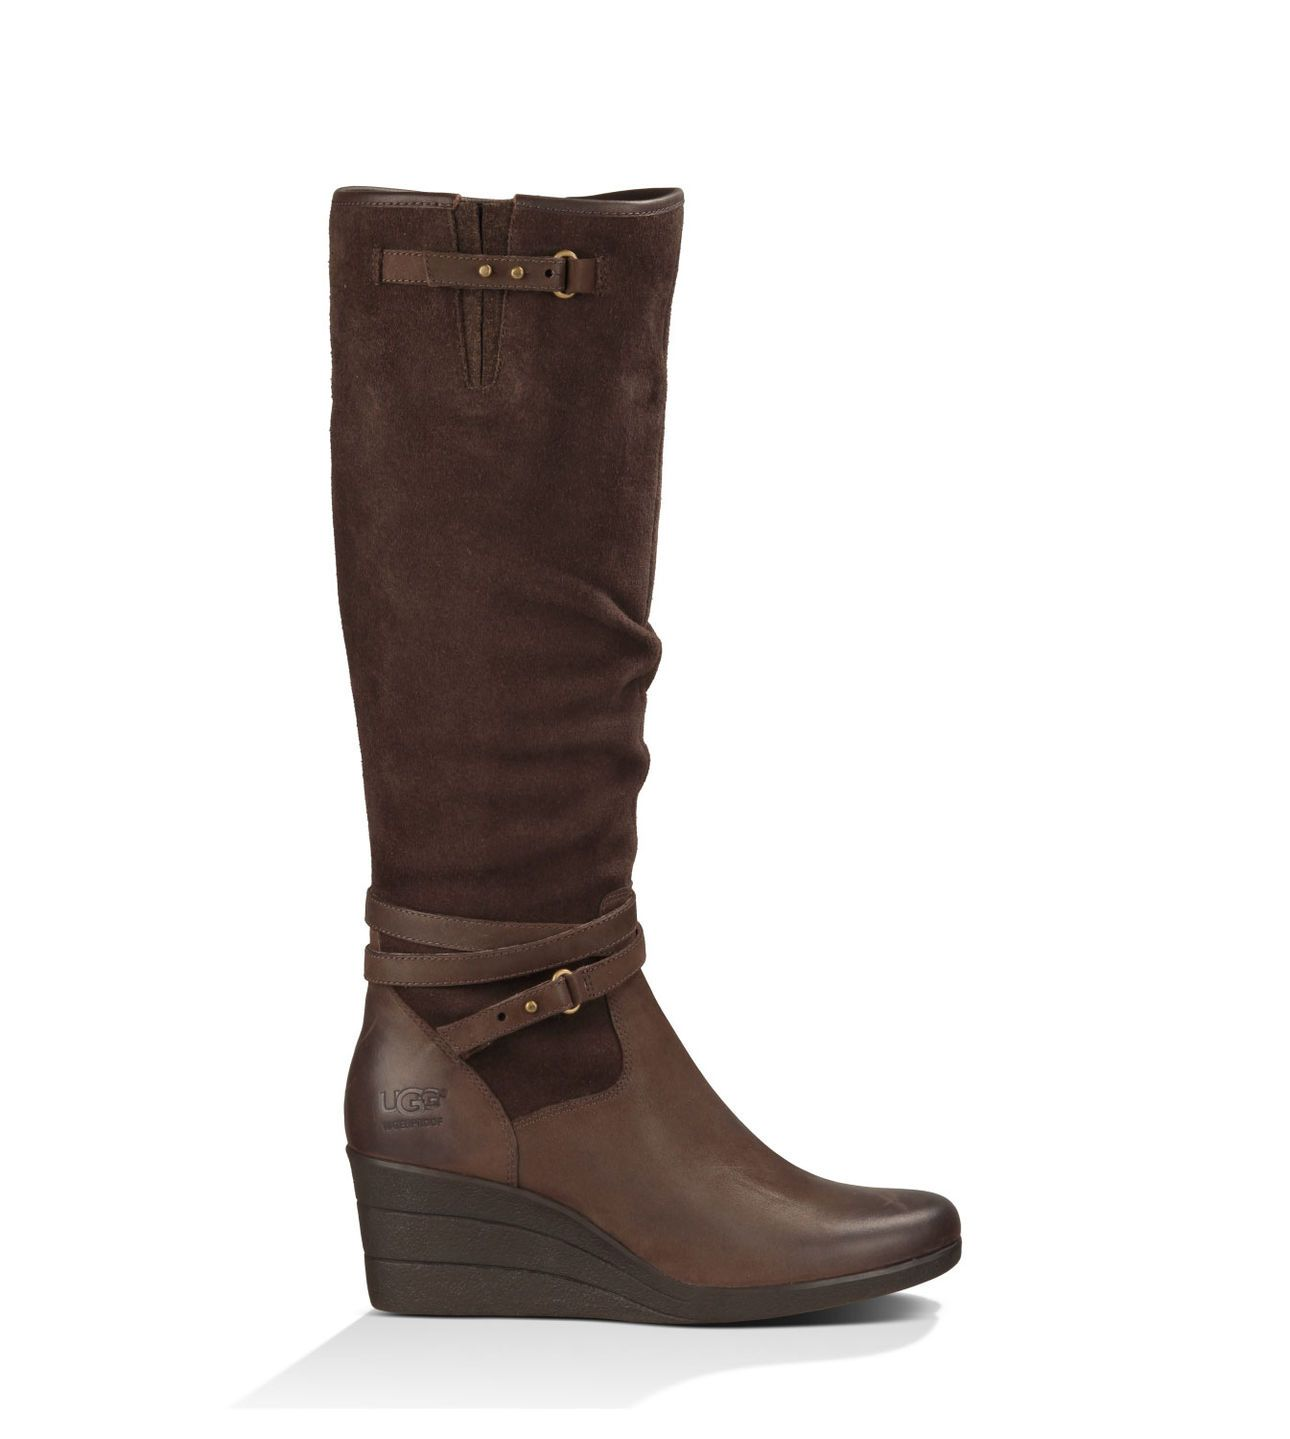 abb2a3c8d938 Free Shipping   Free Returns for the Authentic UGG® Women s Lesley Boot.  Browse this